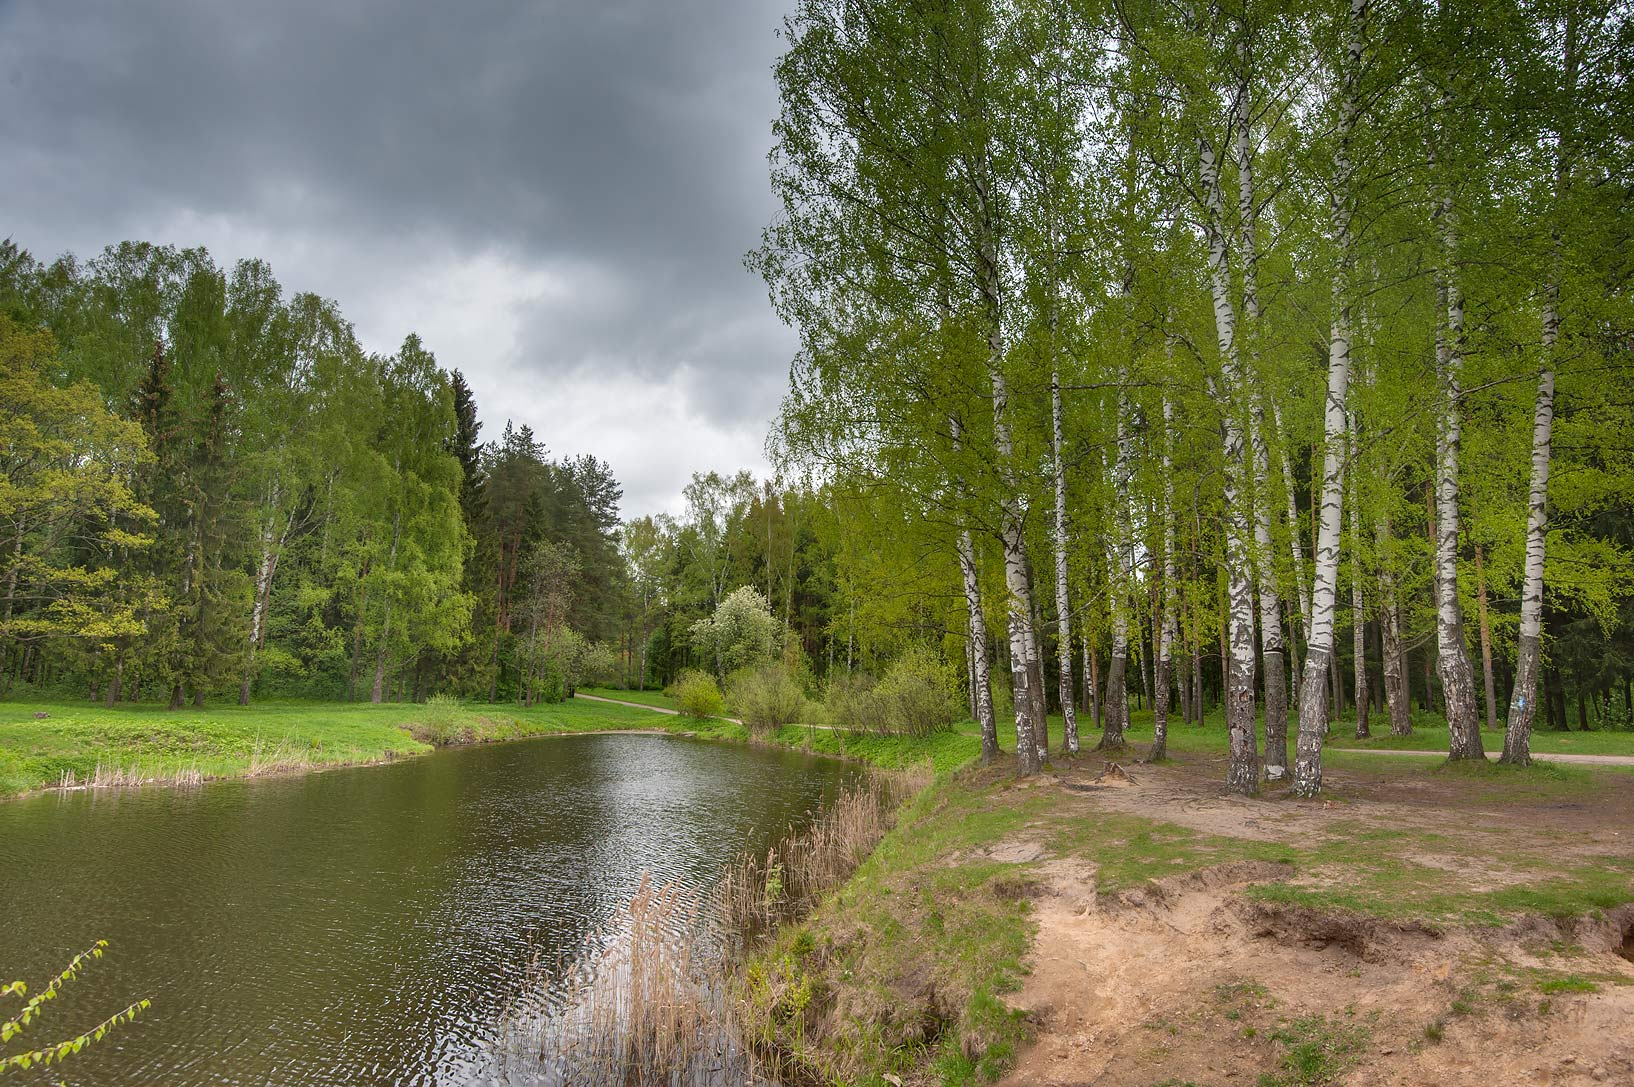 Birches and a pond near Krasnogo Solntsa (Red Sun...suburb of St.Petersburg, Russia